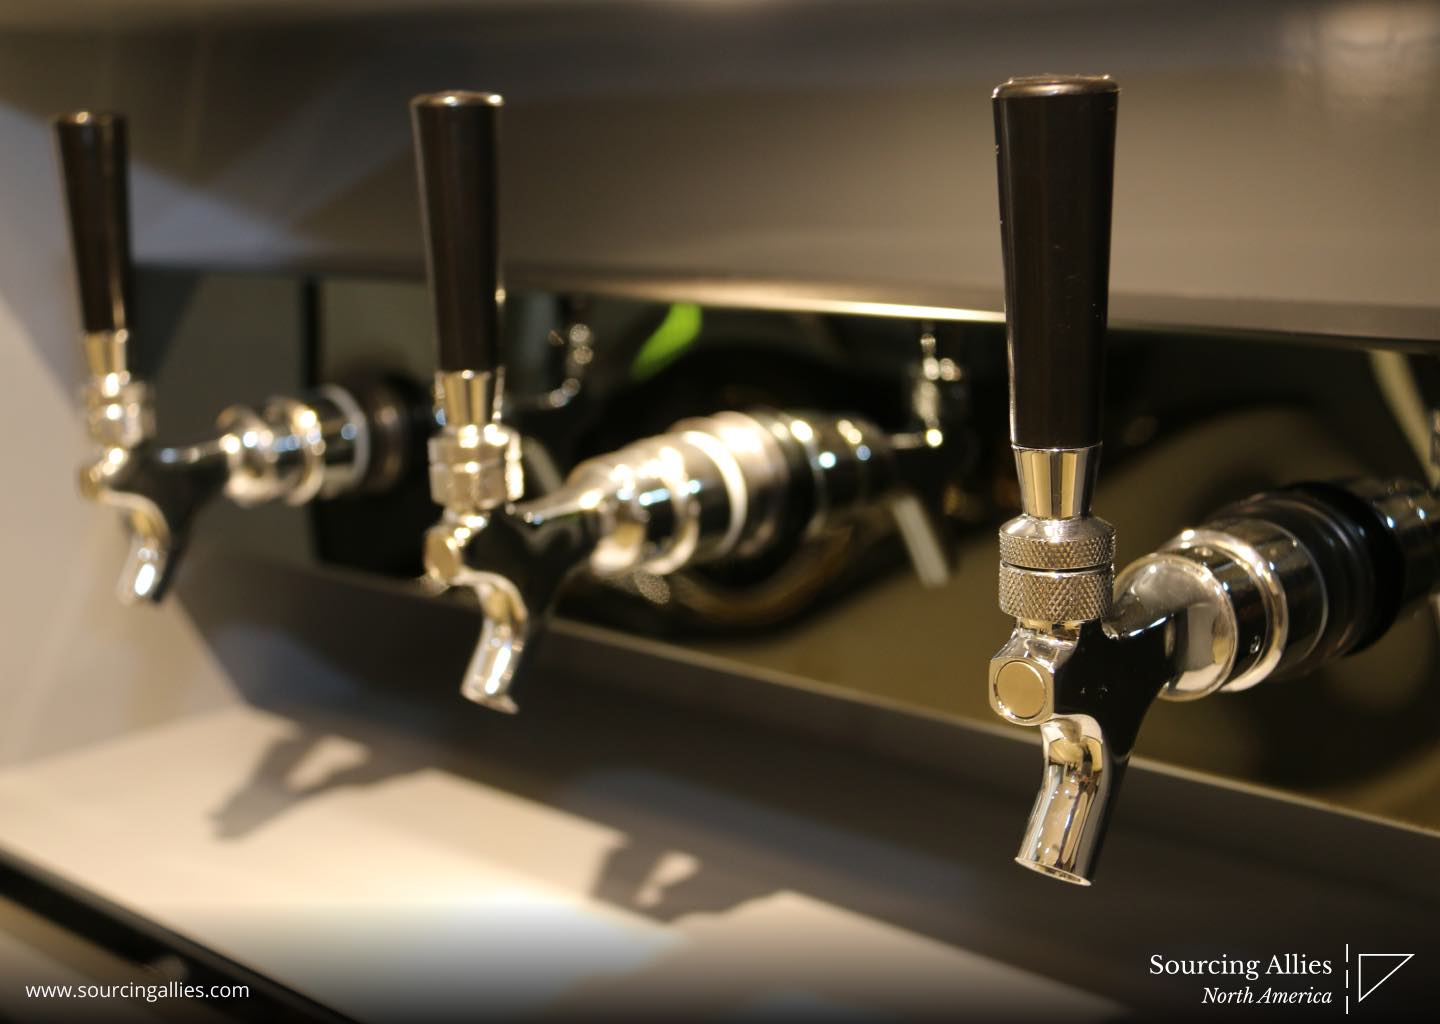 We are a China buying agent for beer taps using diecasting and plastic injection molding techniques